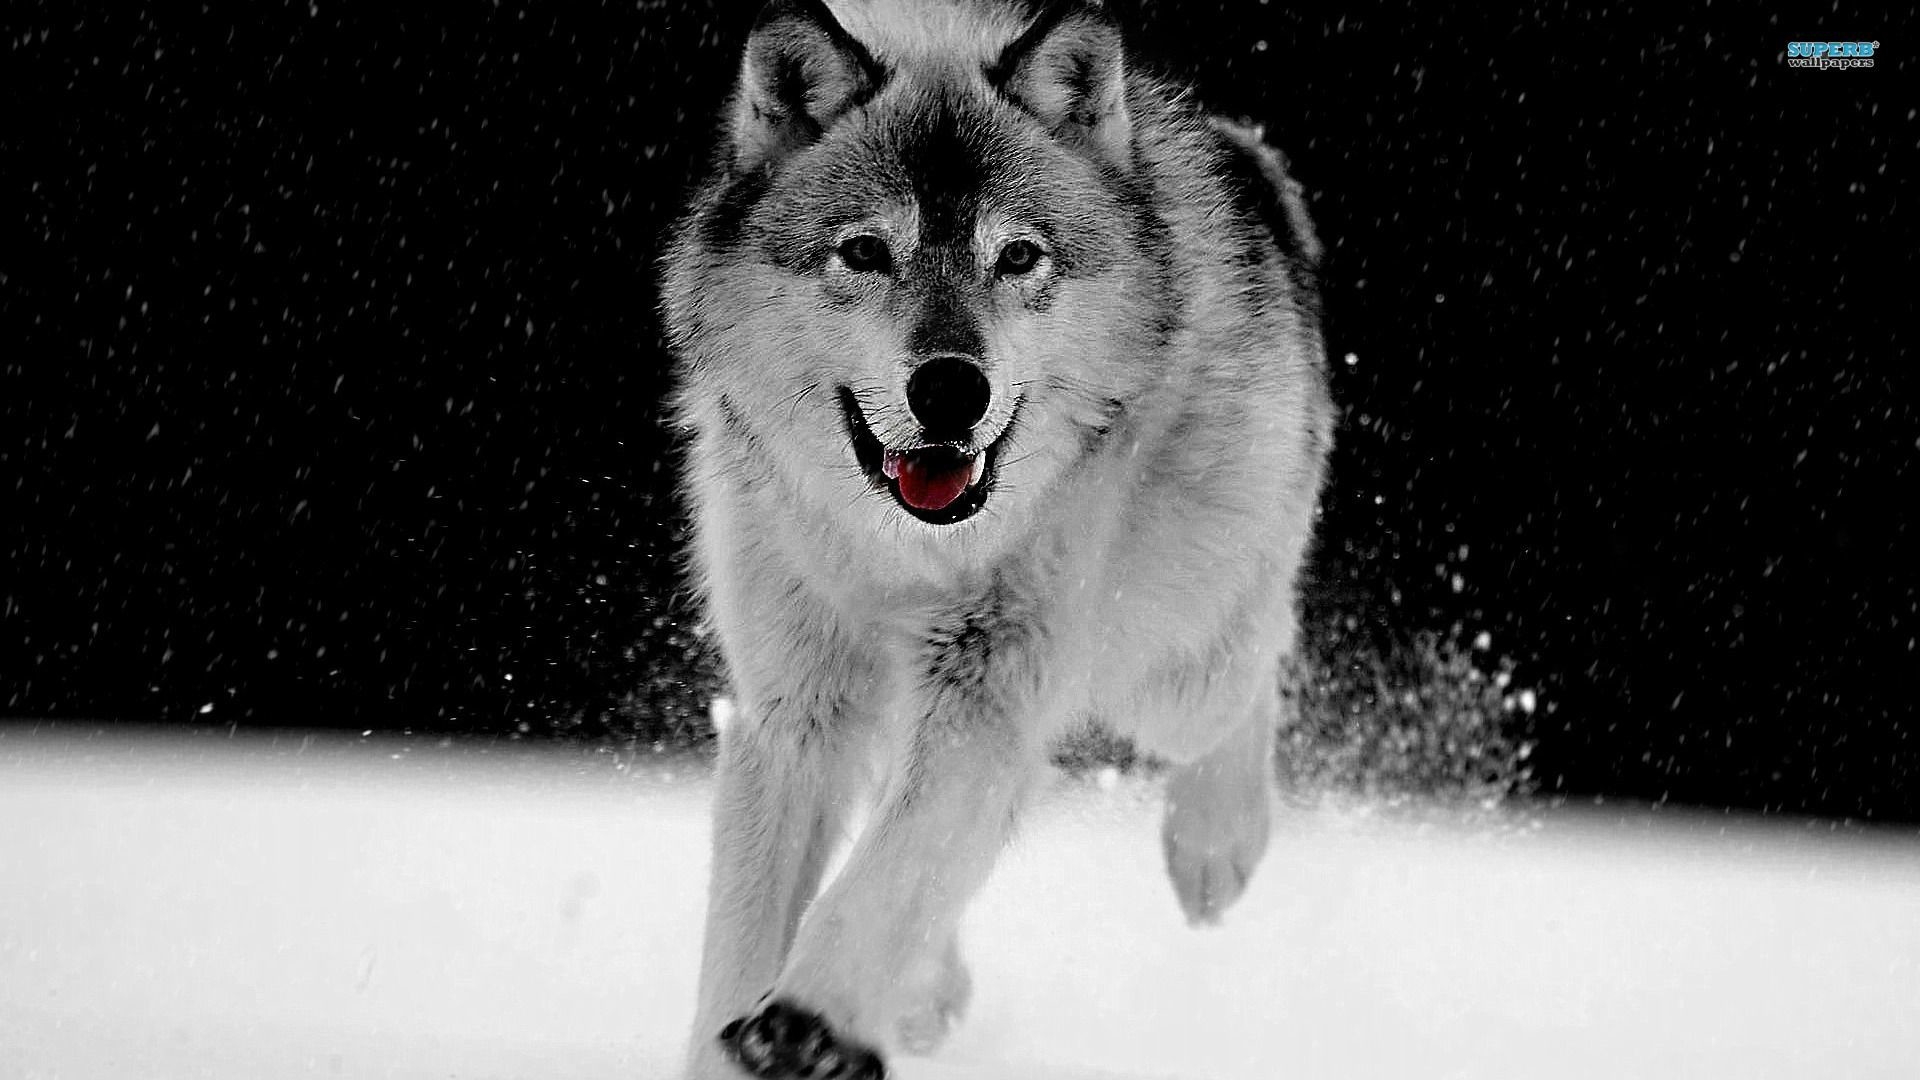 LyhyXX Wallpapers: Awesome Wolf Images, Malia Heer